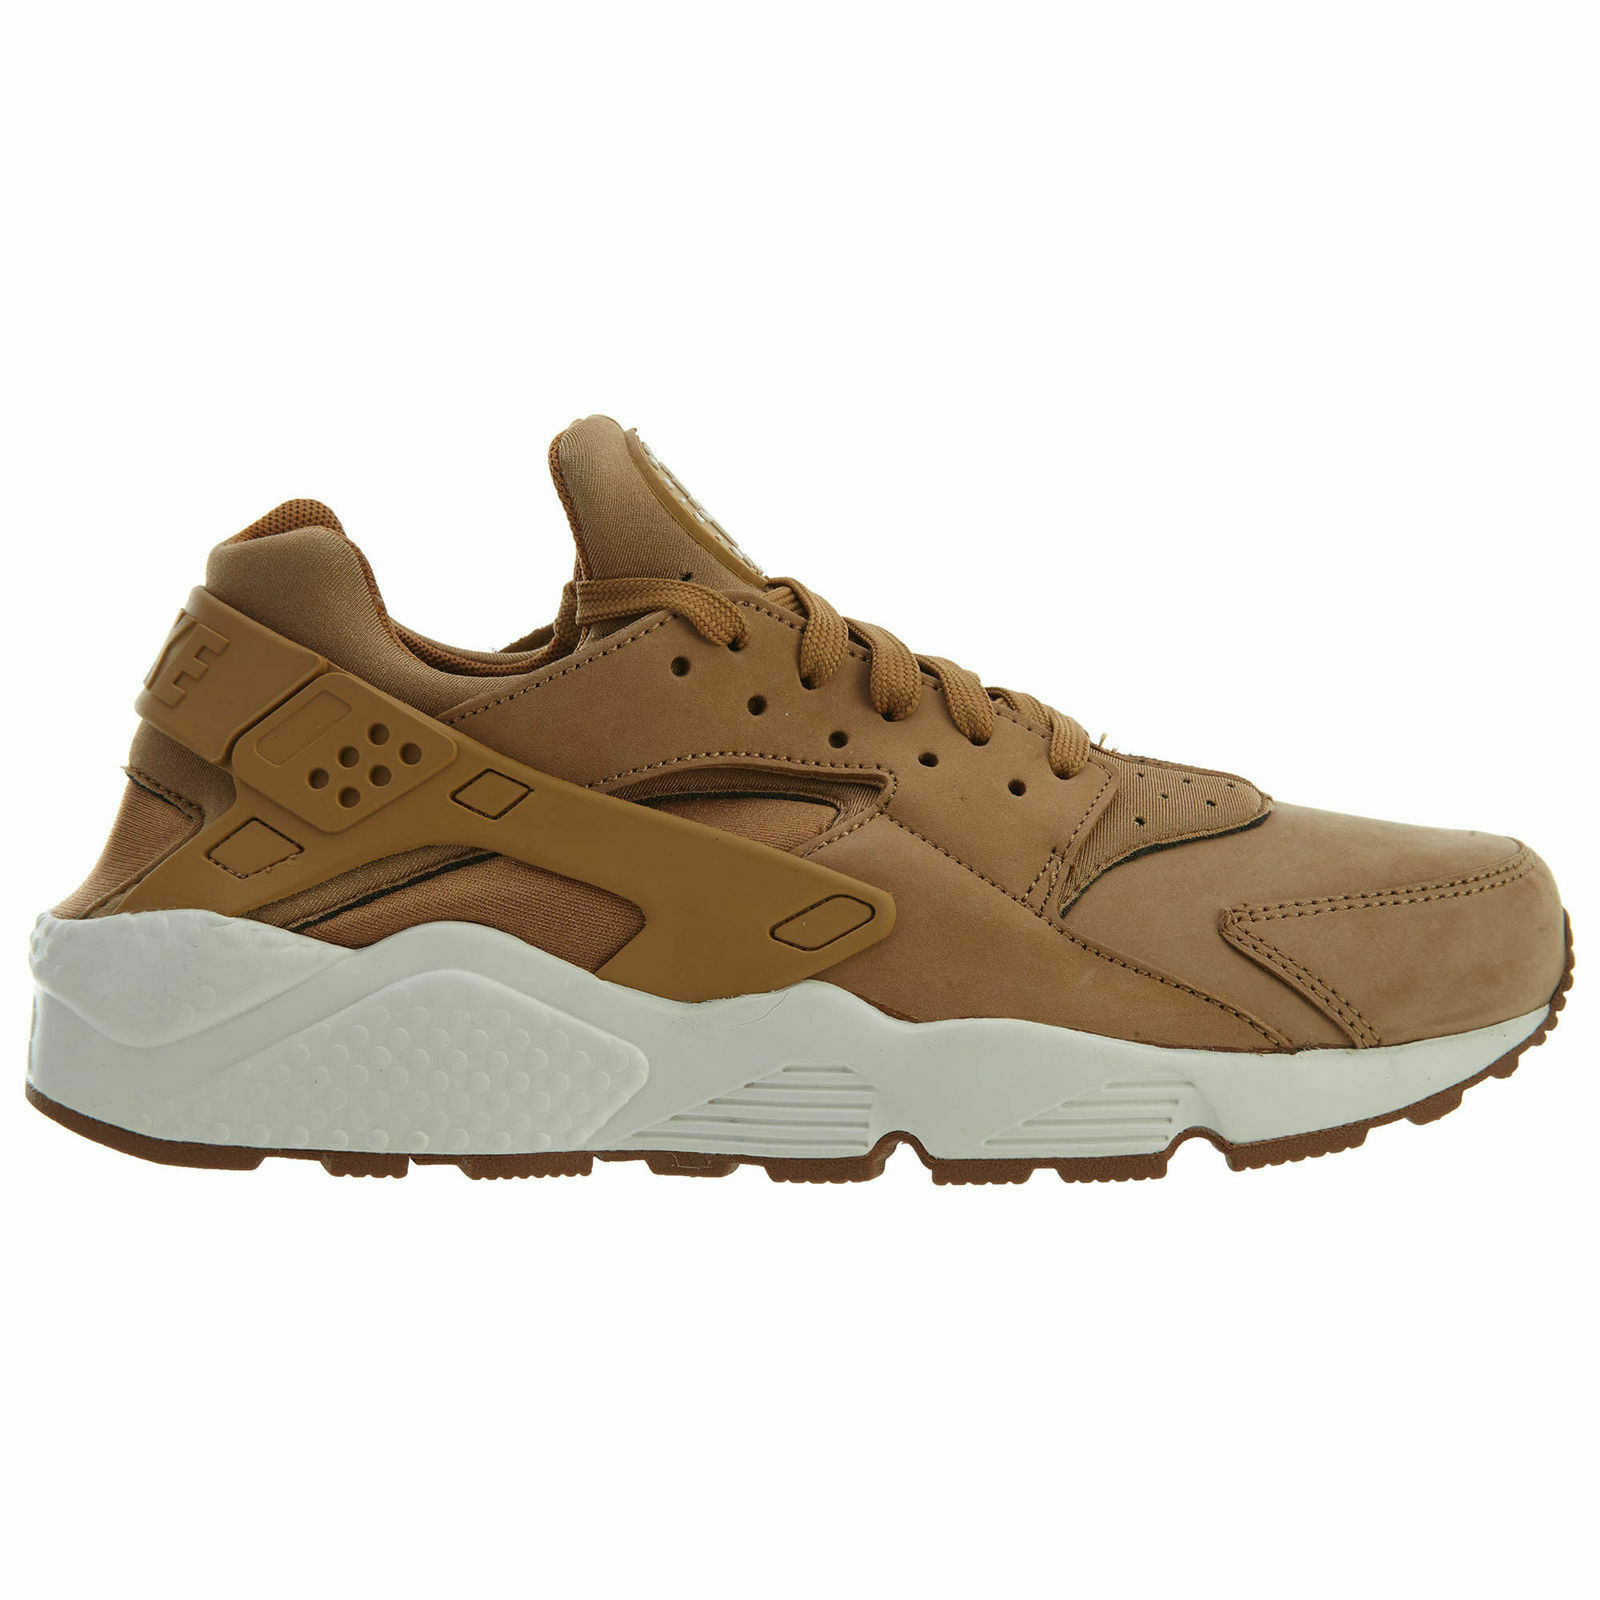 HOMME Nike Air Huarache Chaussures Flax and 50 similar items